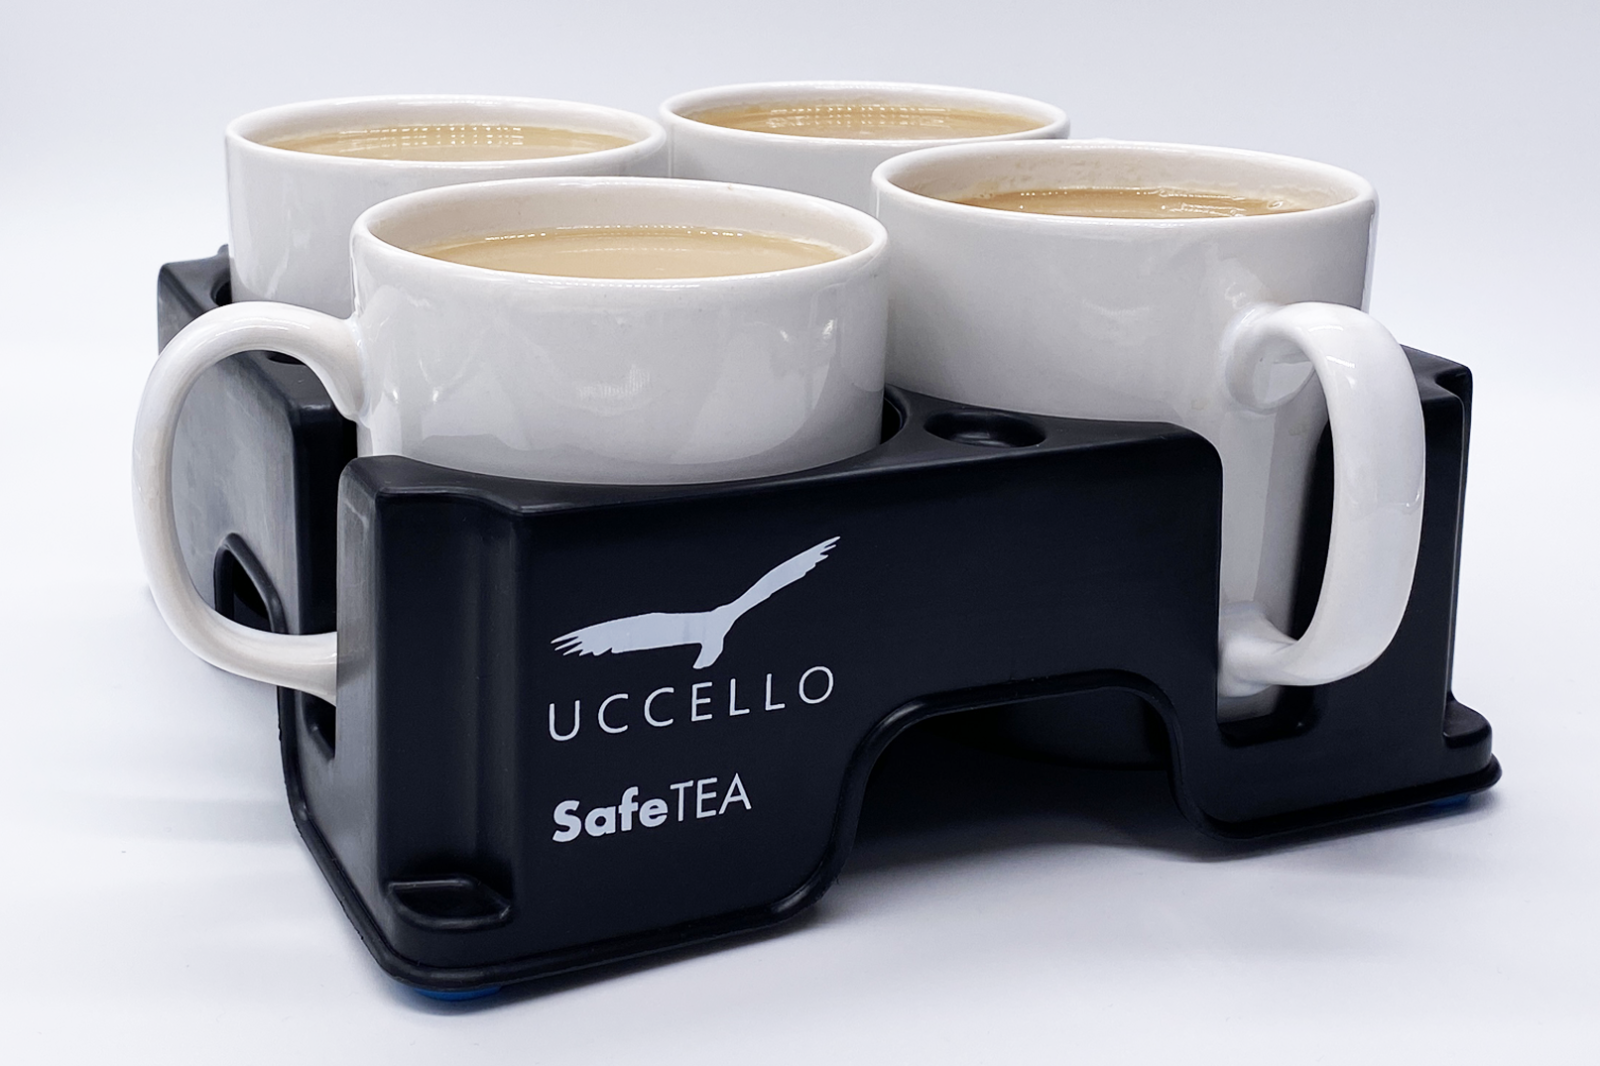 Muggi Cup Holder with 4 cups of tea